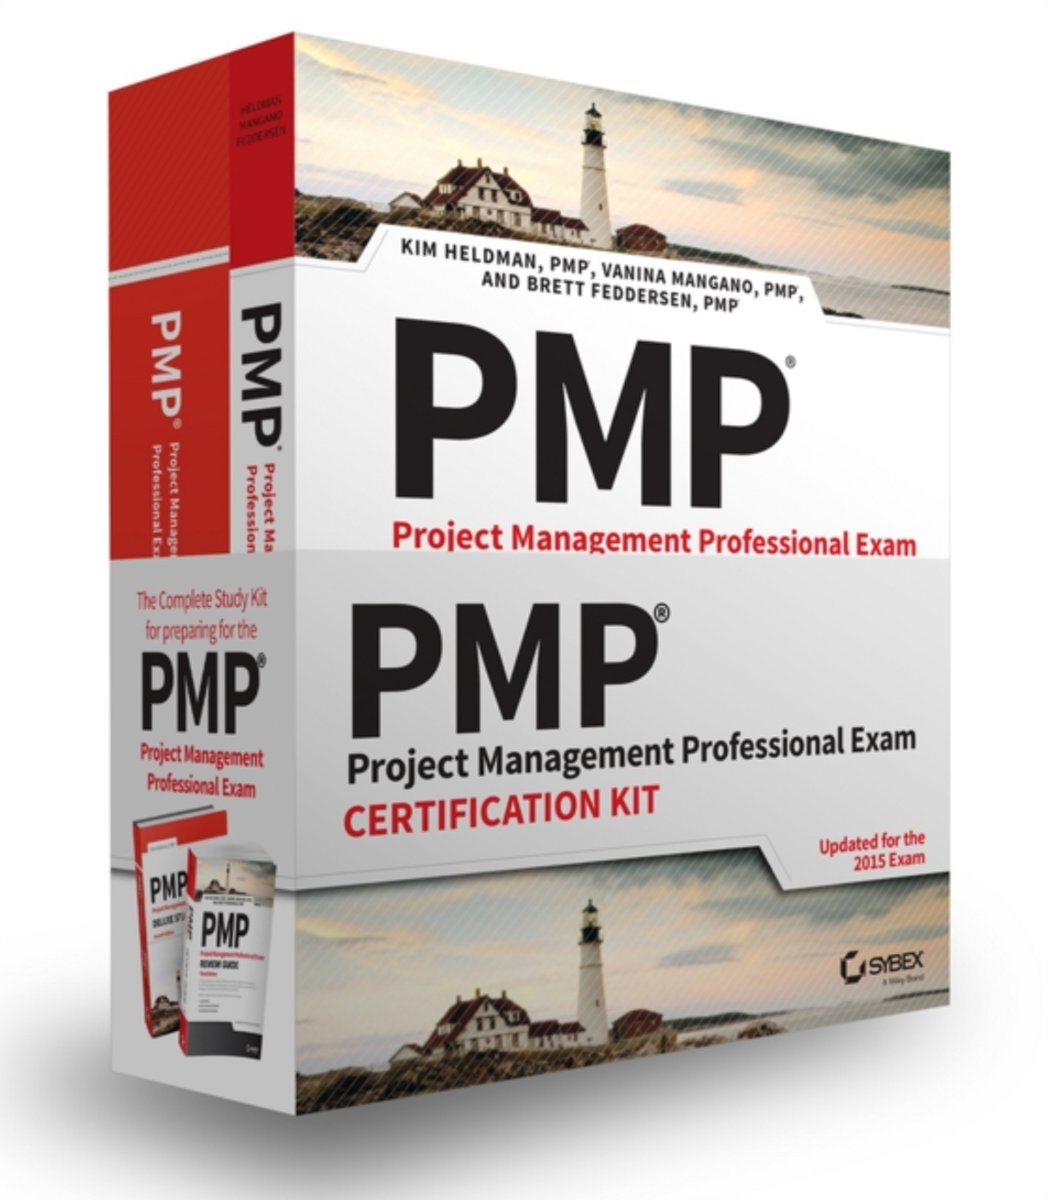 Bol Pmp Project Management Professional Exam Certification Kit